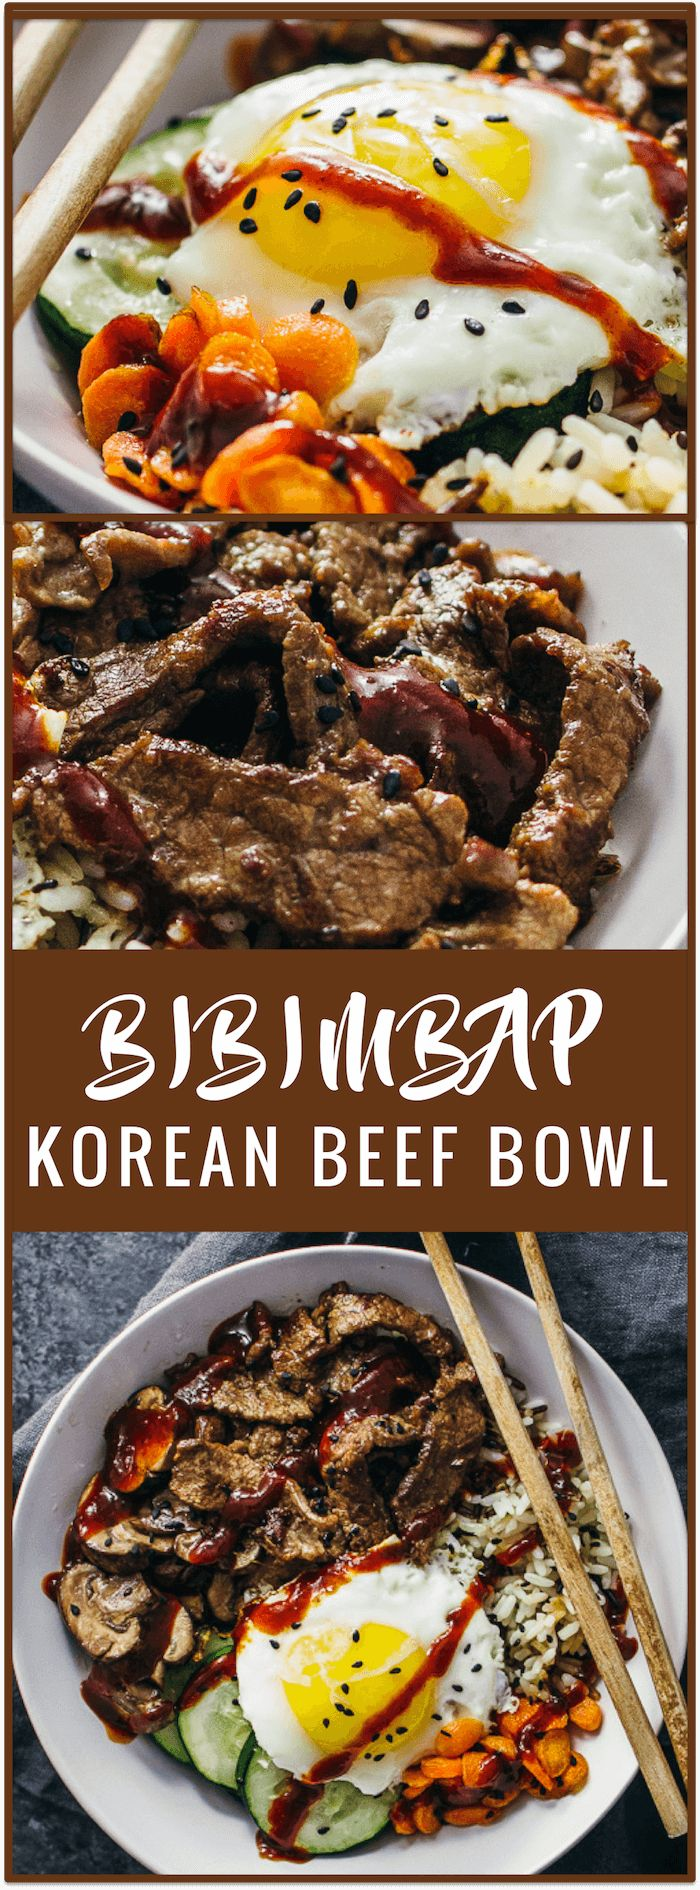 bibimbap | korean beef bowl | korean rice bowl | bibimbap sauce | bibimbap bowl | how to eat bibimbap | korean beef marinade | easy recipe | asian beef | asian bowl | spicy | sponsored #riceonthego via @savory tooth